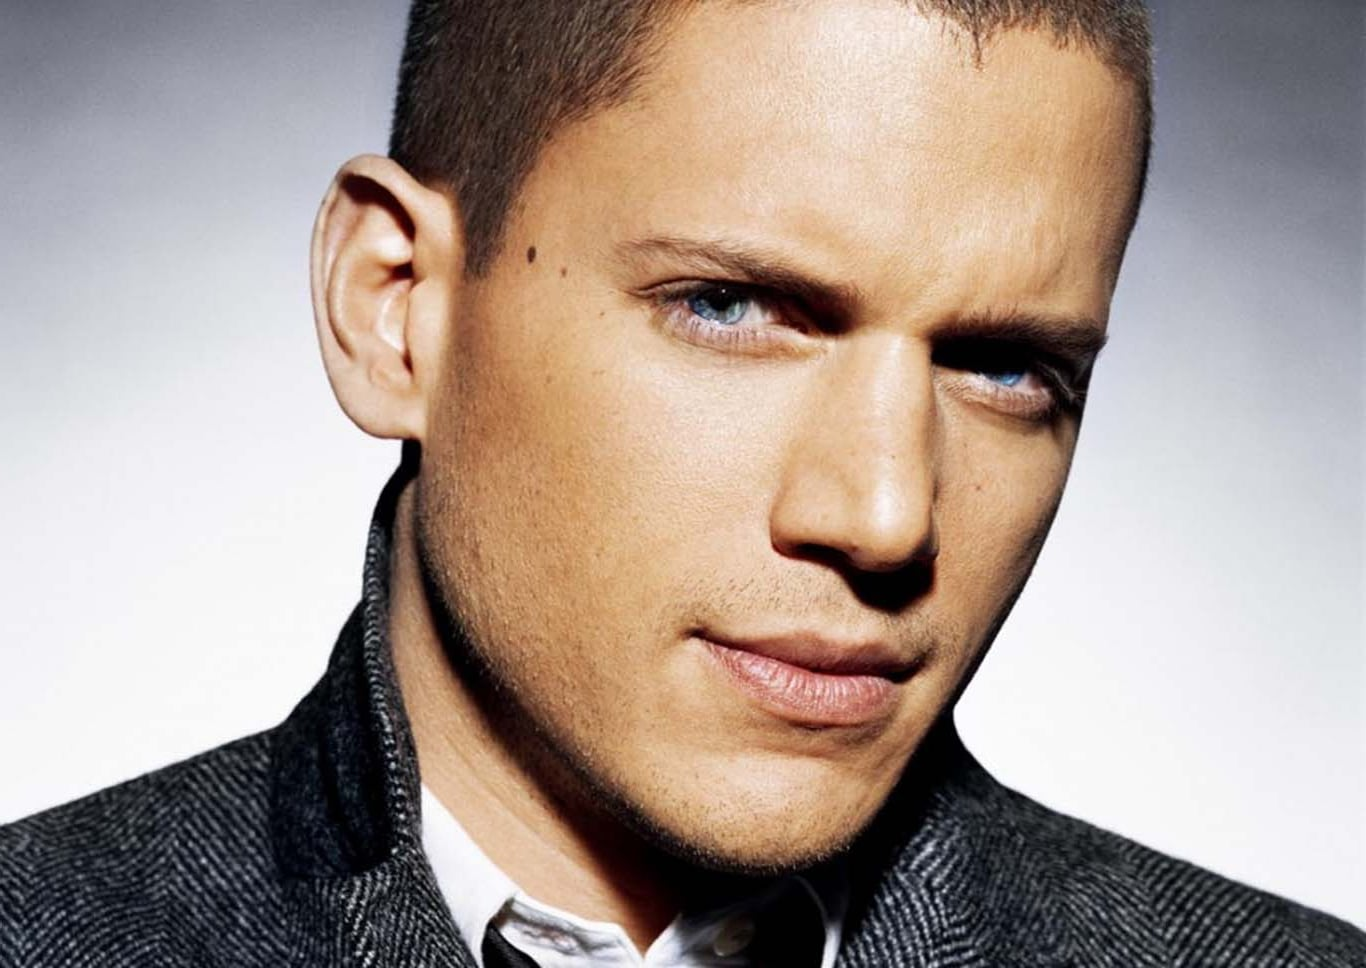 Car Wallpaper Hd Iphone 4 Wentworth Miller Hd Wallpapers Free Download